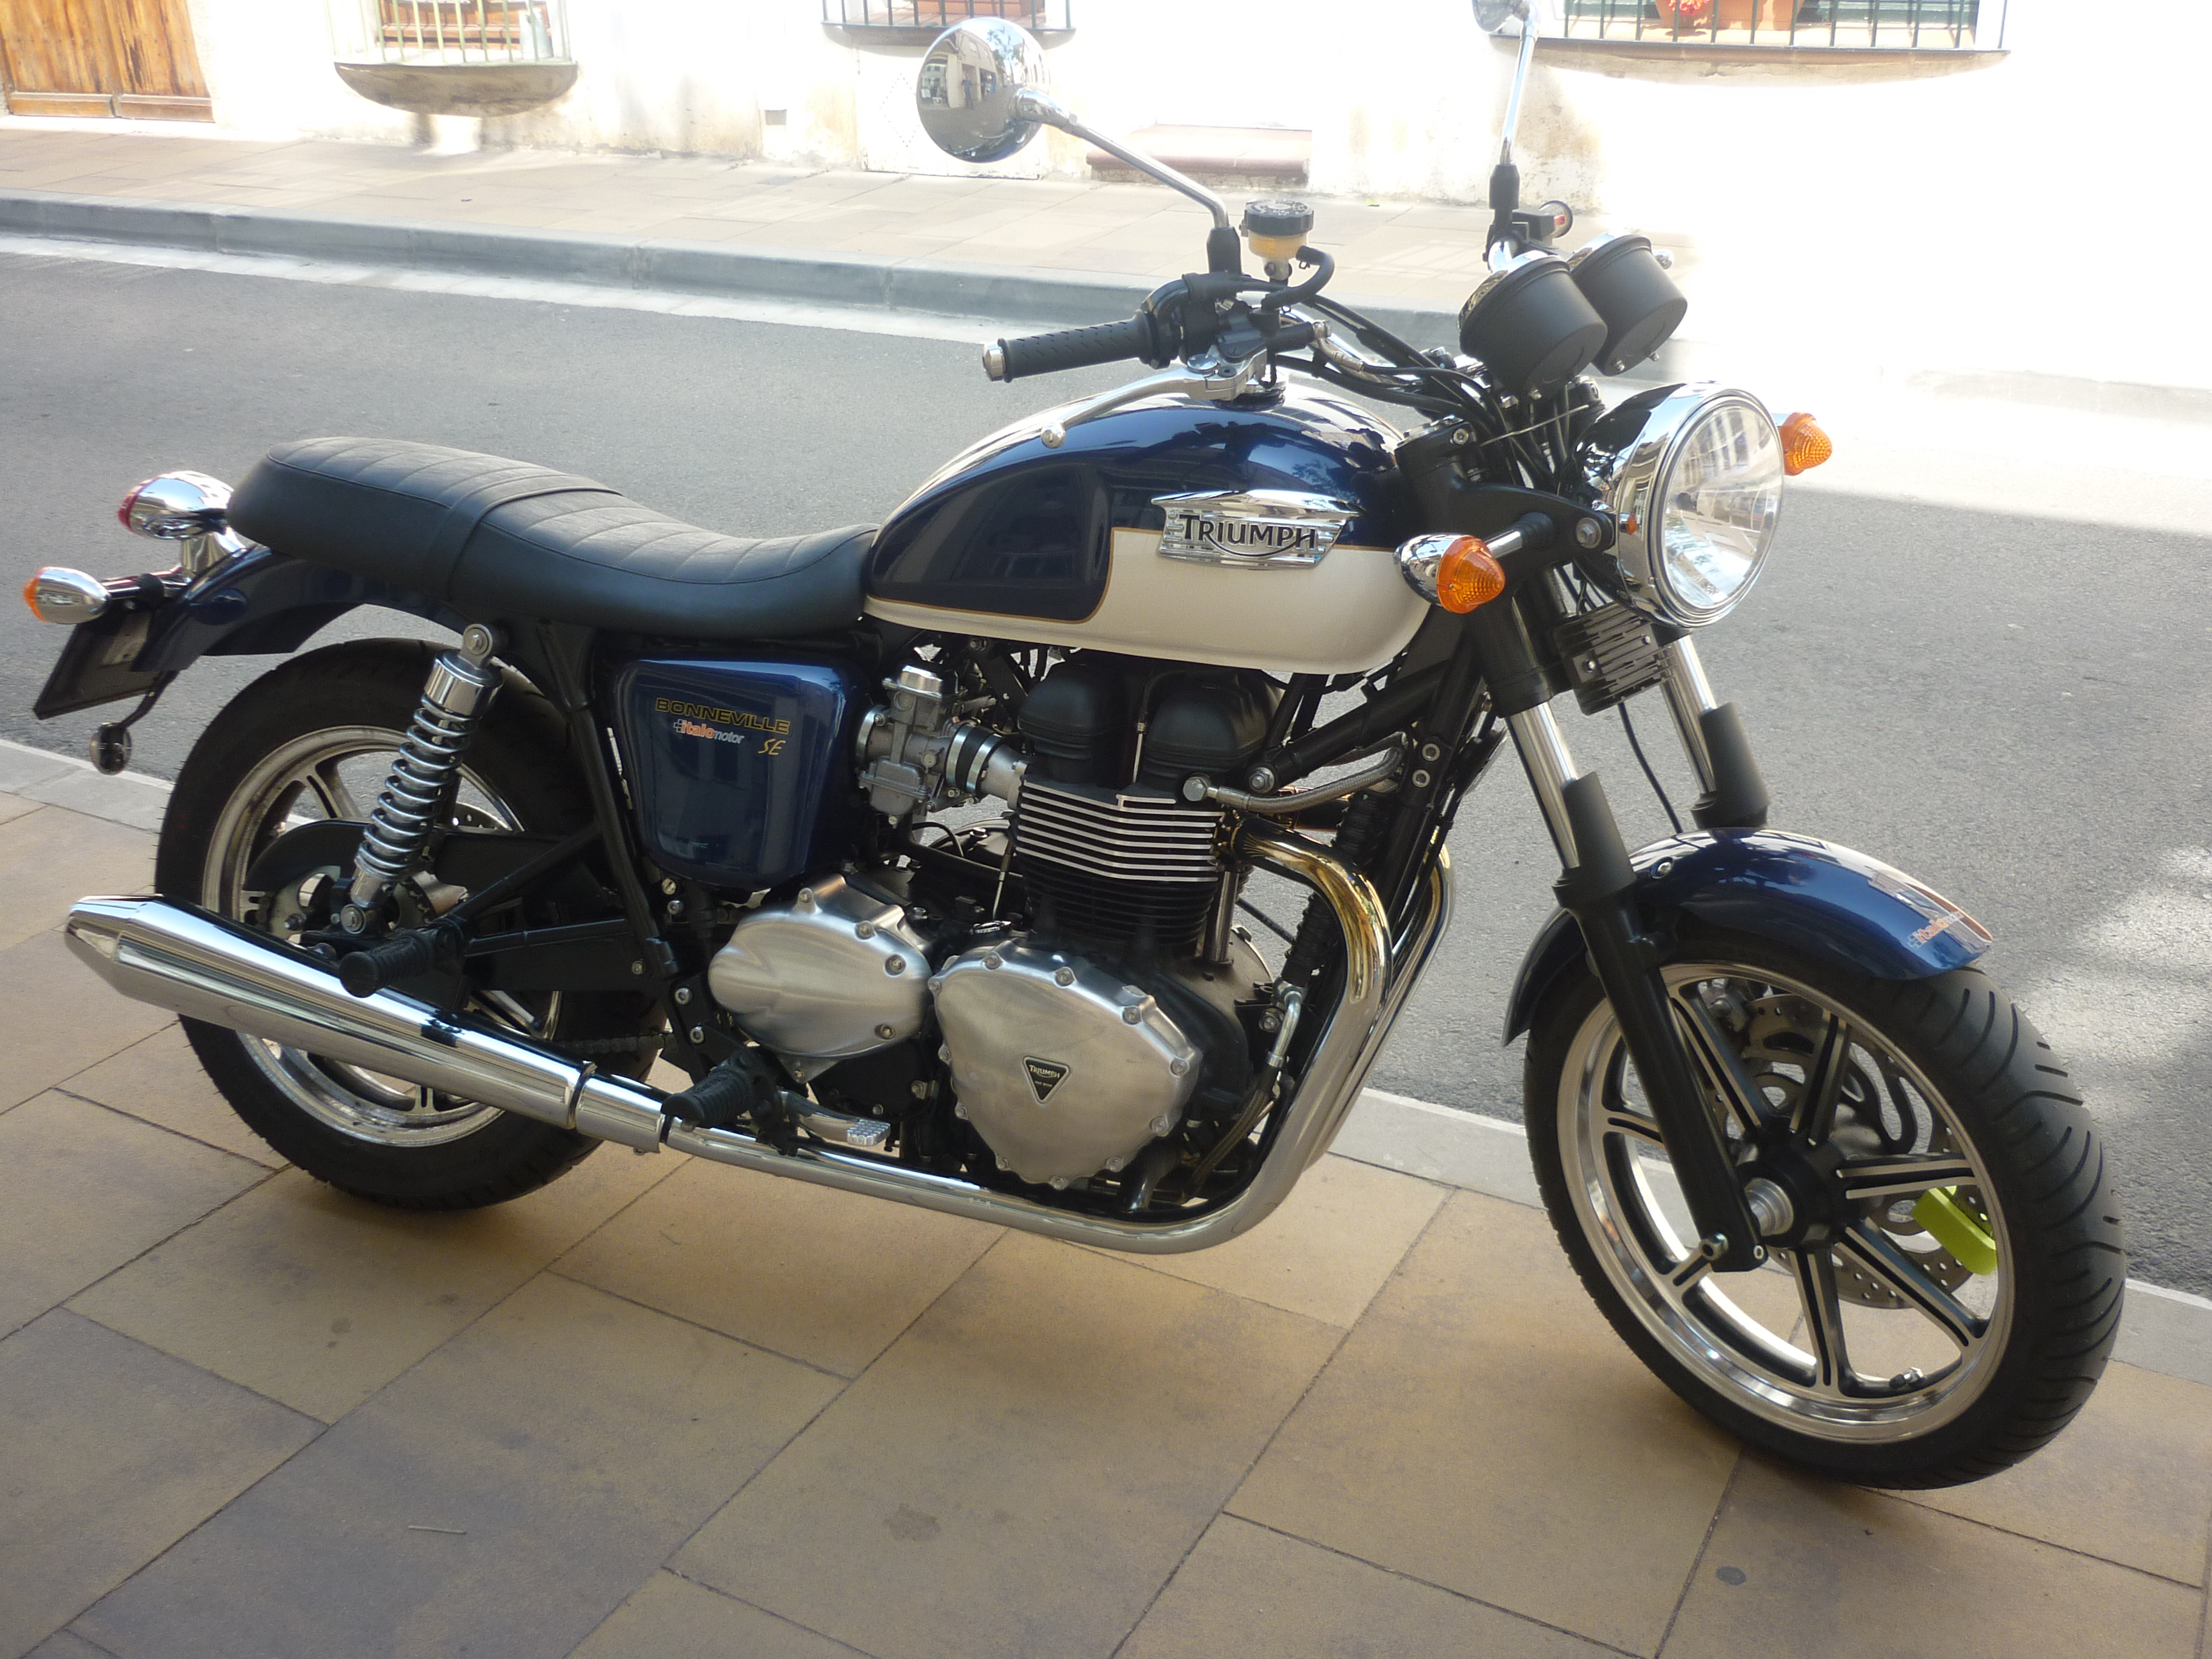 Triumph Bonneville on the street